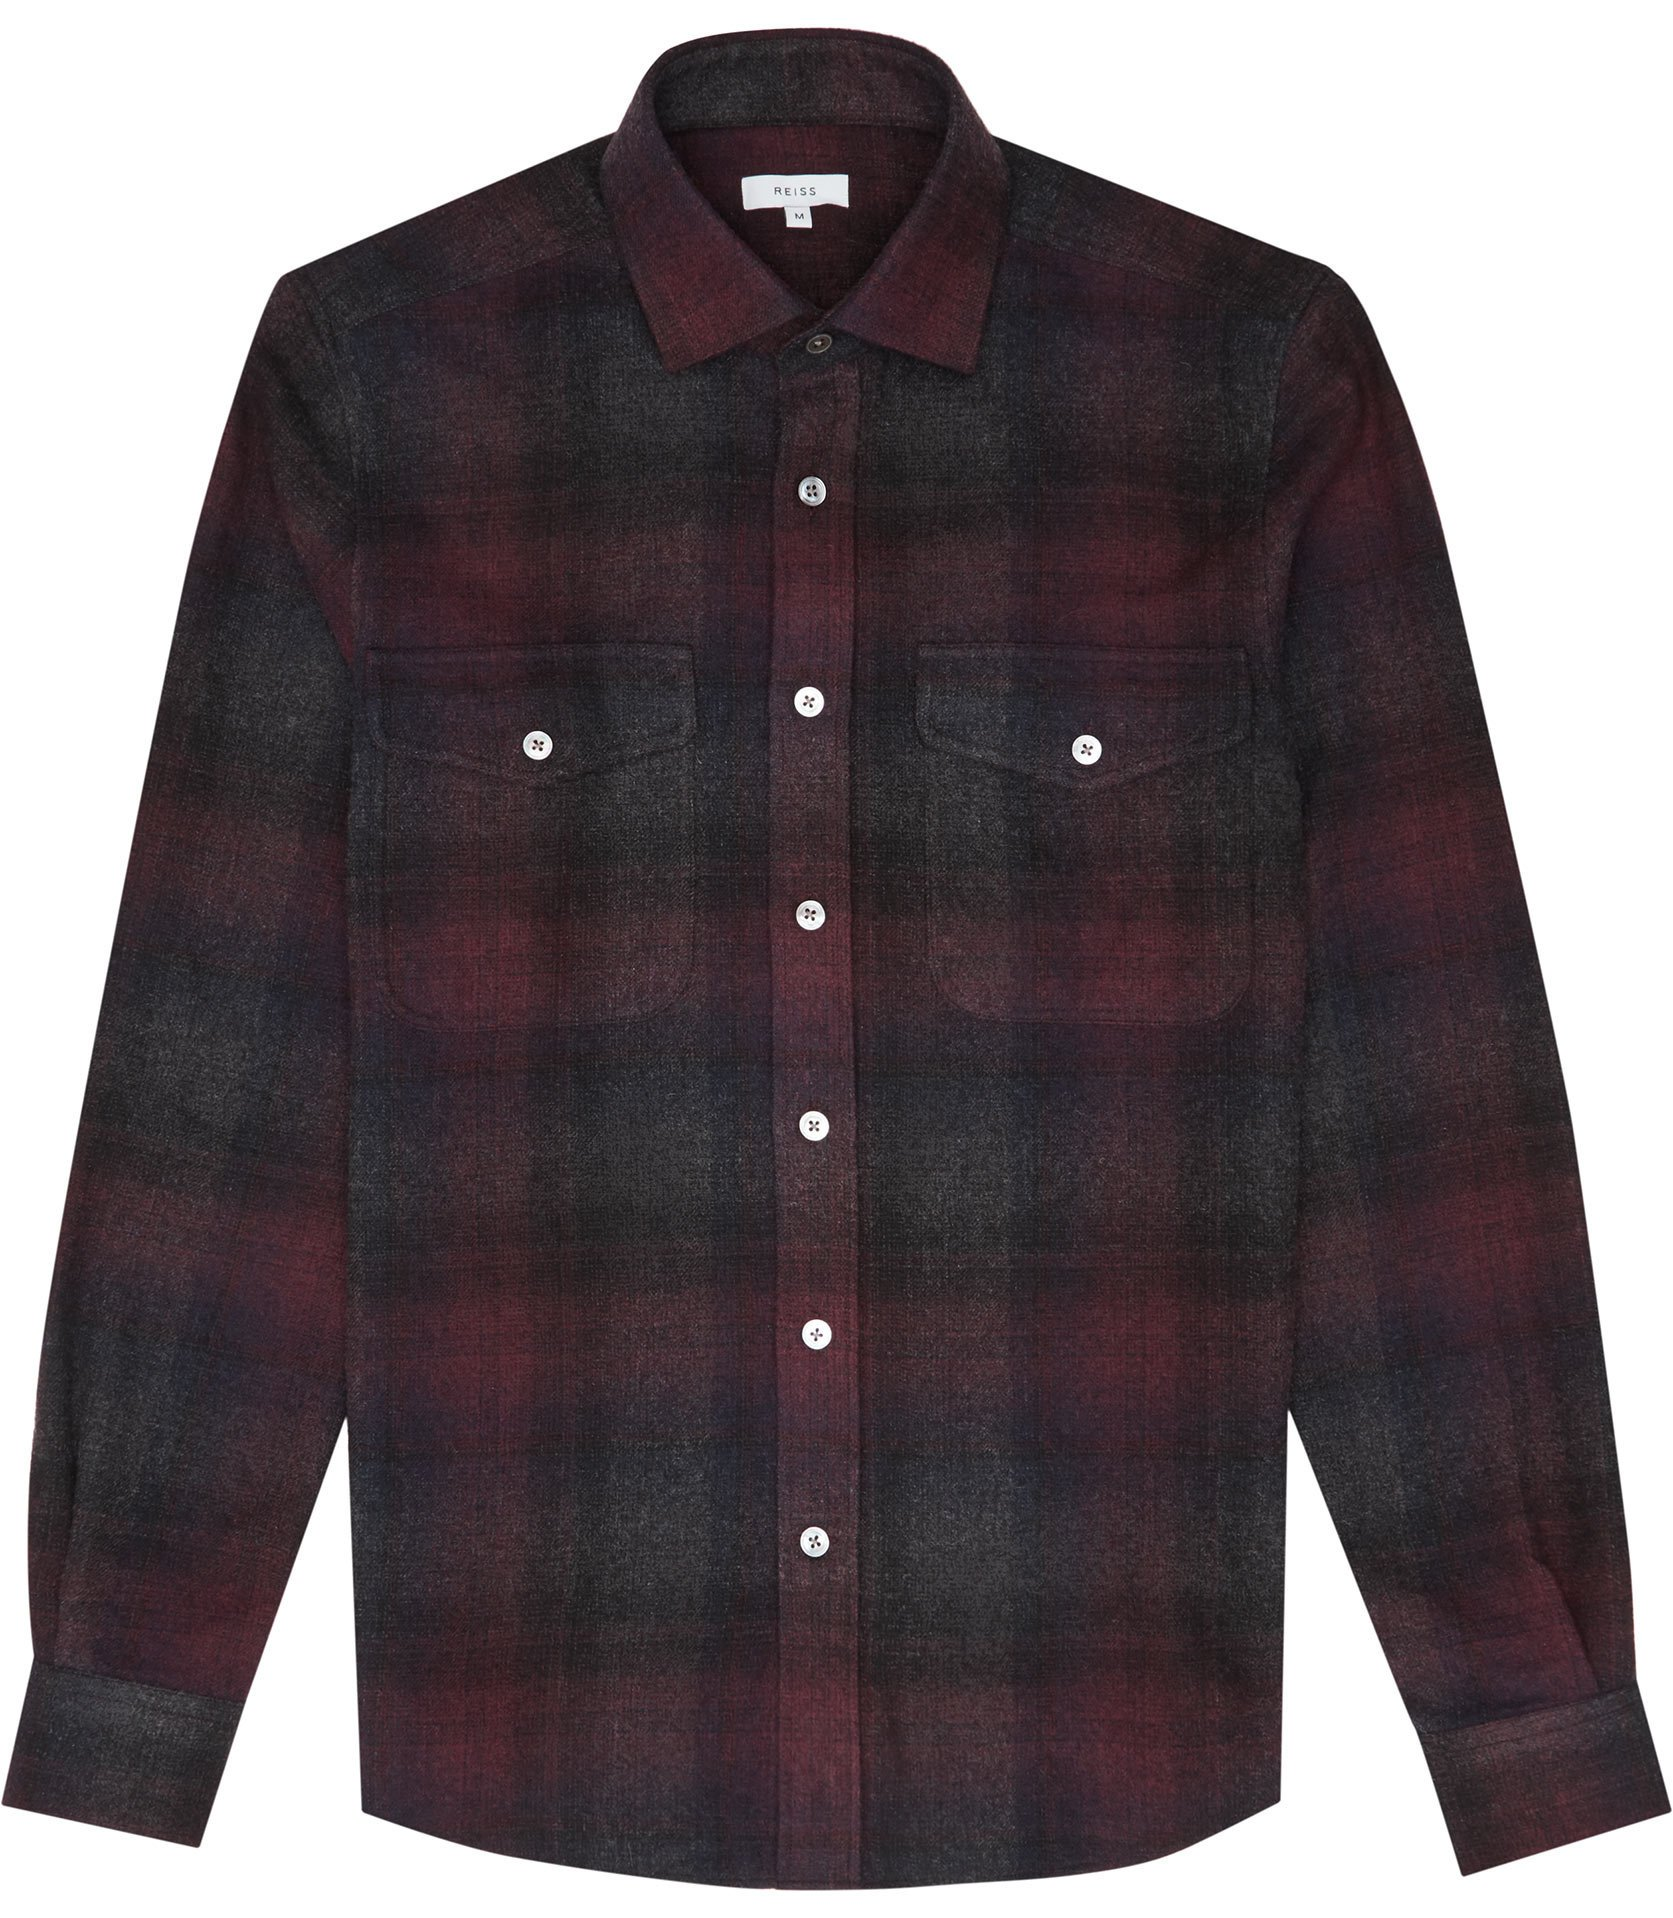 Reiss Bordeaux Union Checked Overshirt